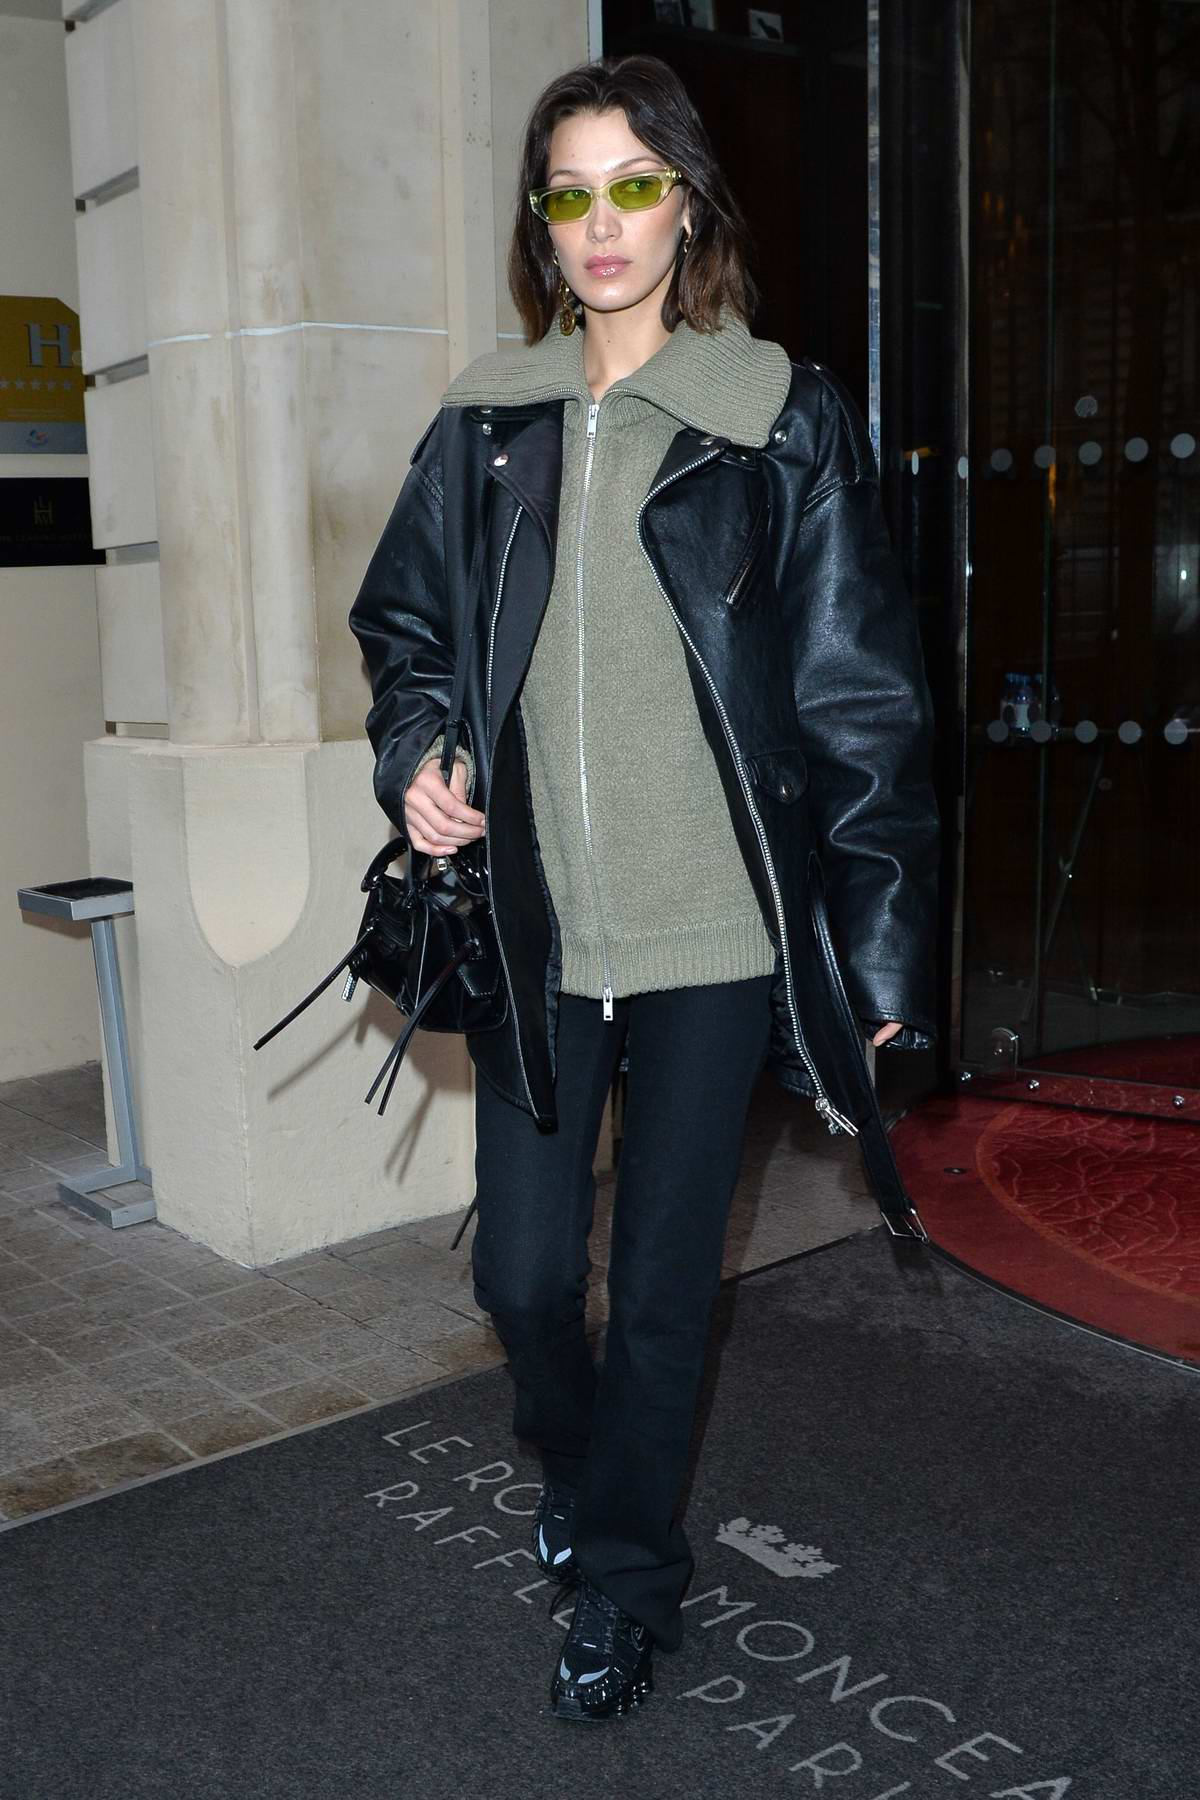 Bella Hadid sports a black leather jacket as she leaves her hotel in Paris, France